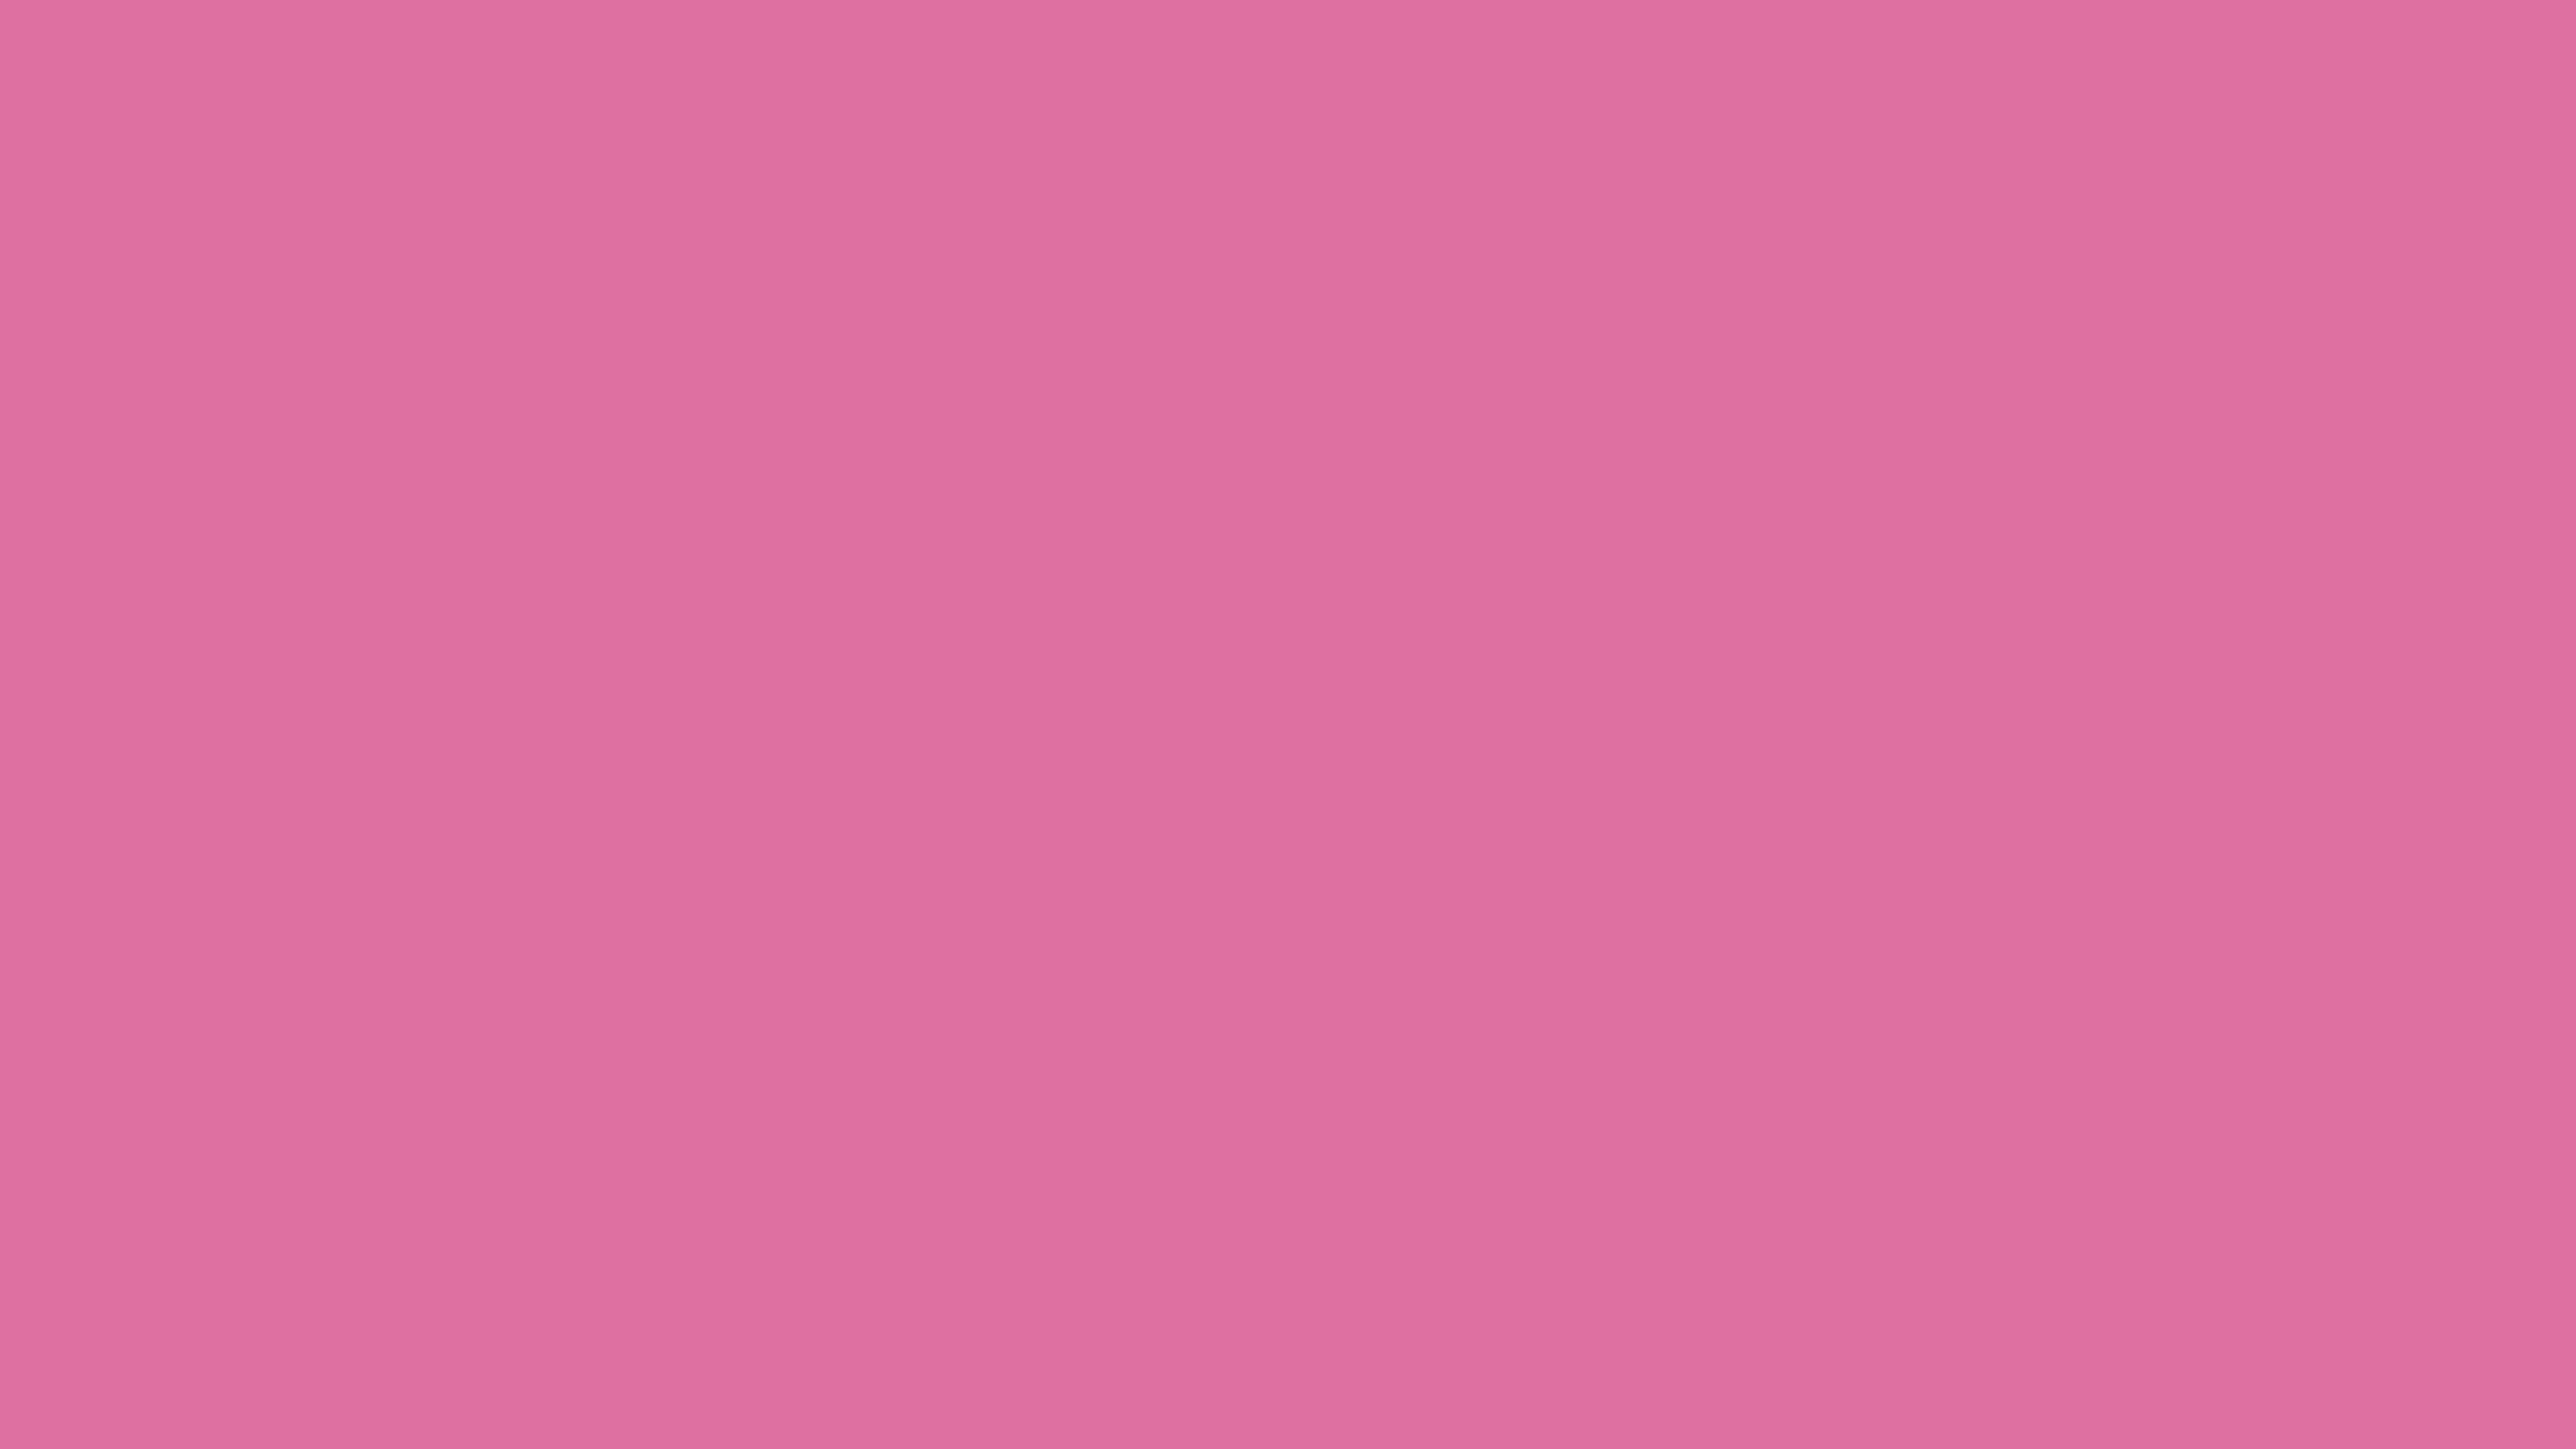 7680x4320 China Pink Solid Color Background